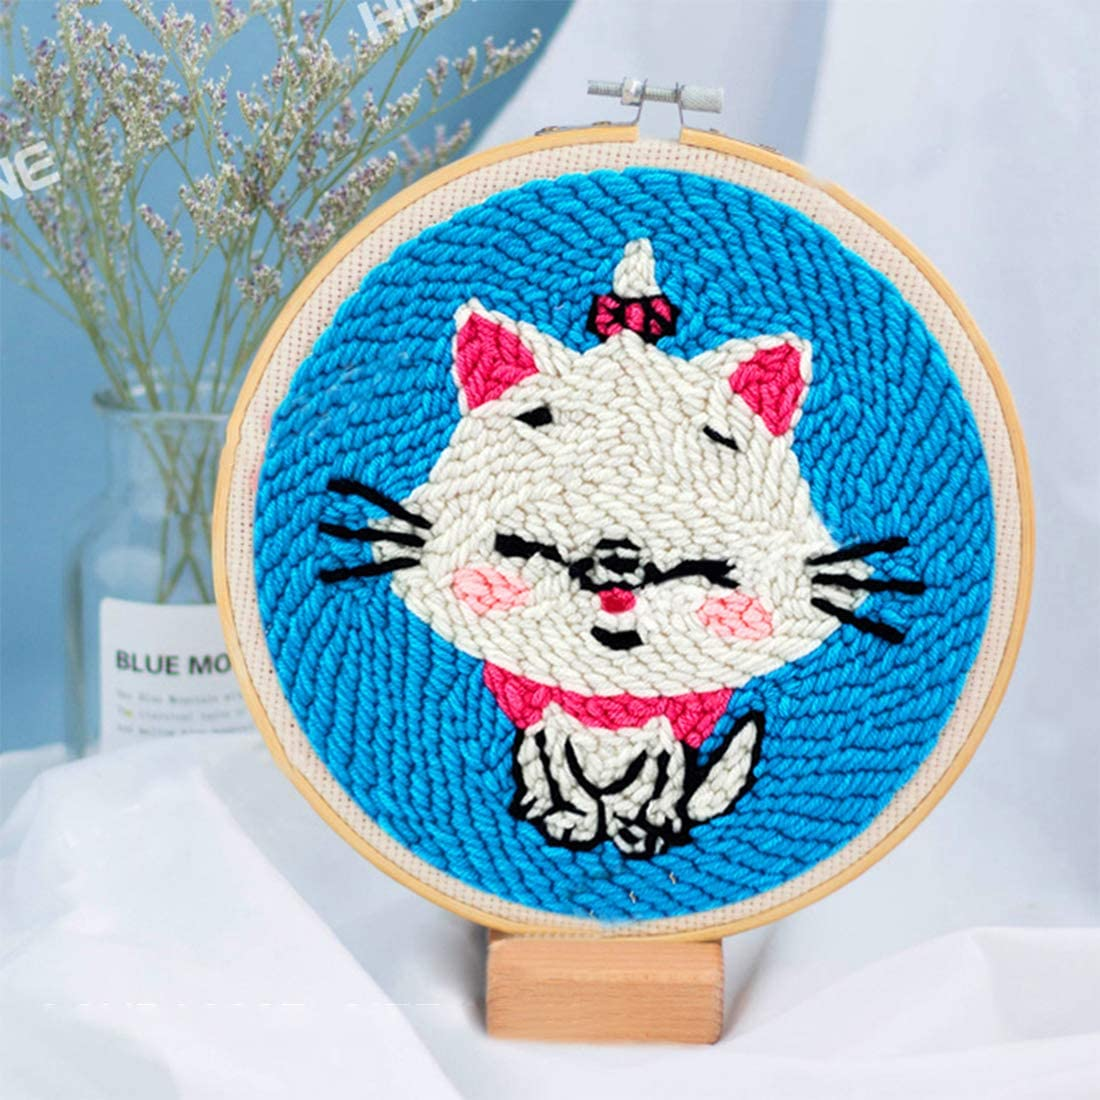 Woolen Latch Hook Kits with Punch Needle Handcraft Embroidery Creative Gift for Adults Kids Beginner DIY Rug Hooking Kit